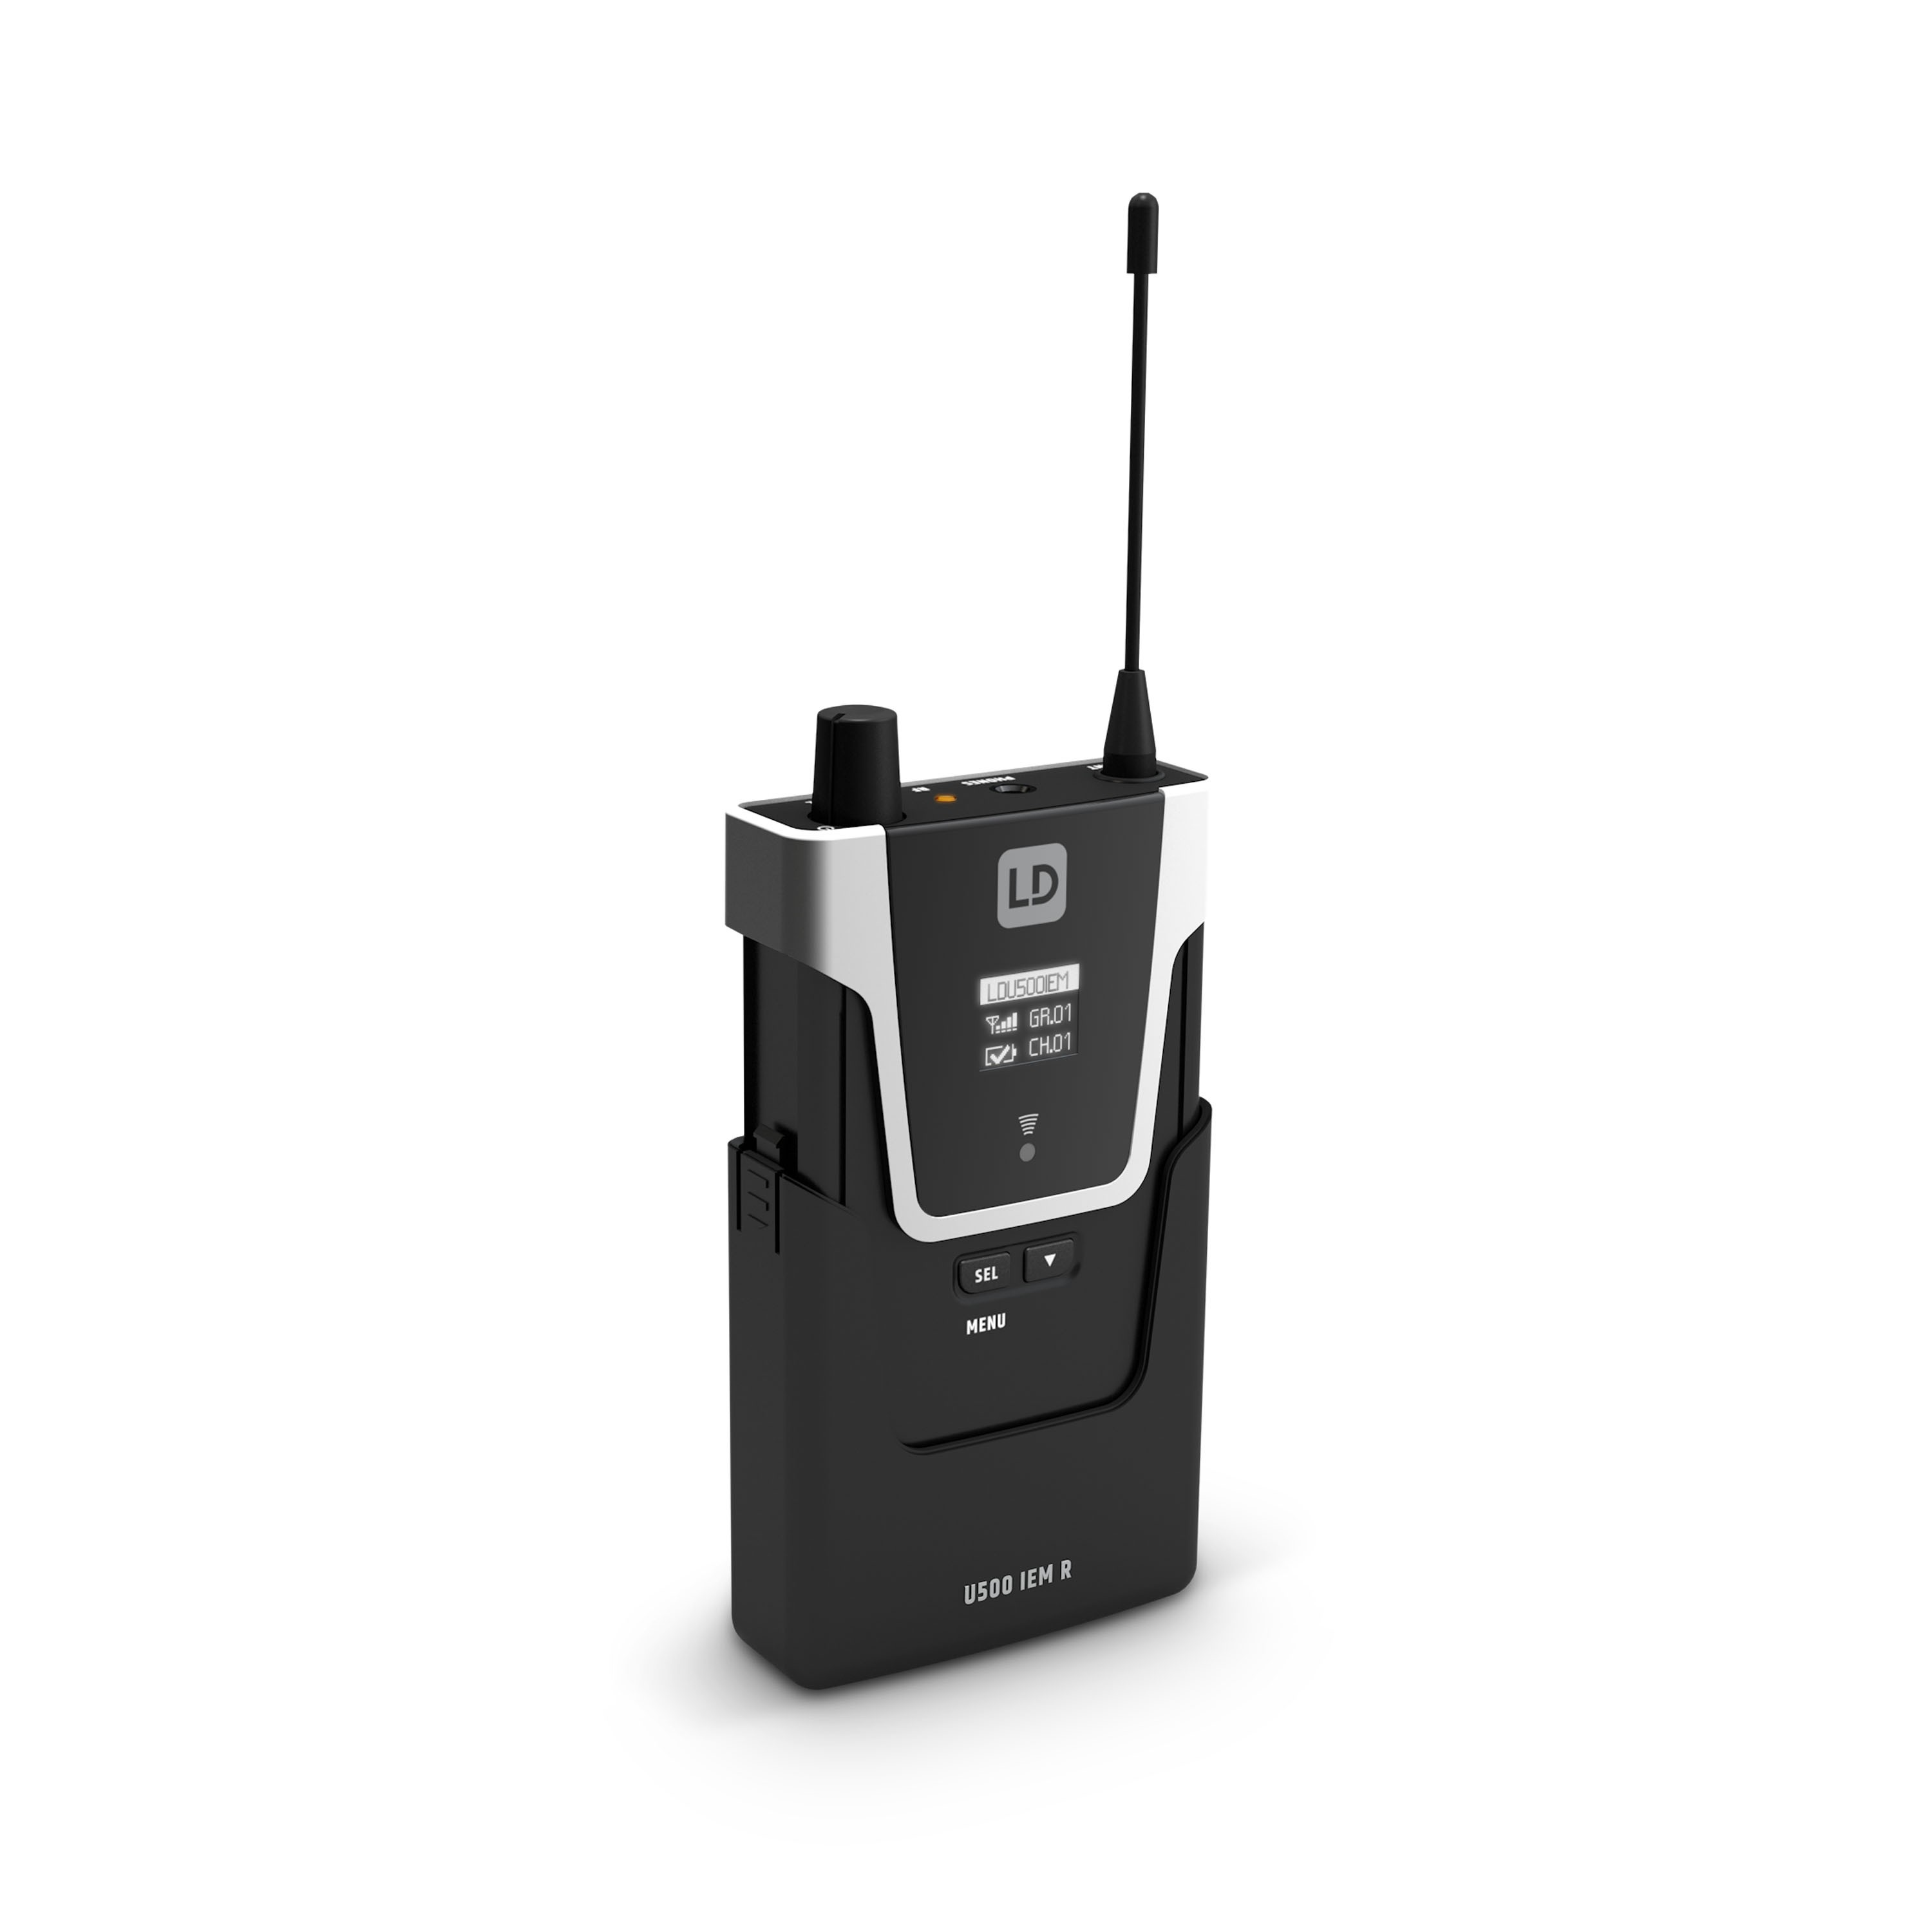 U508 IEM In-Ear Monitoring System